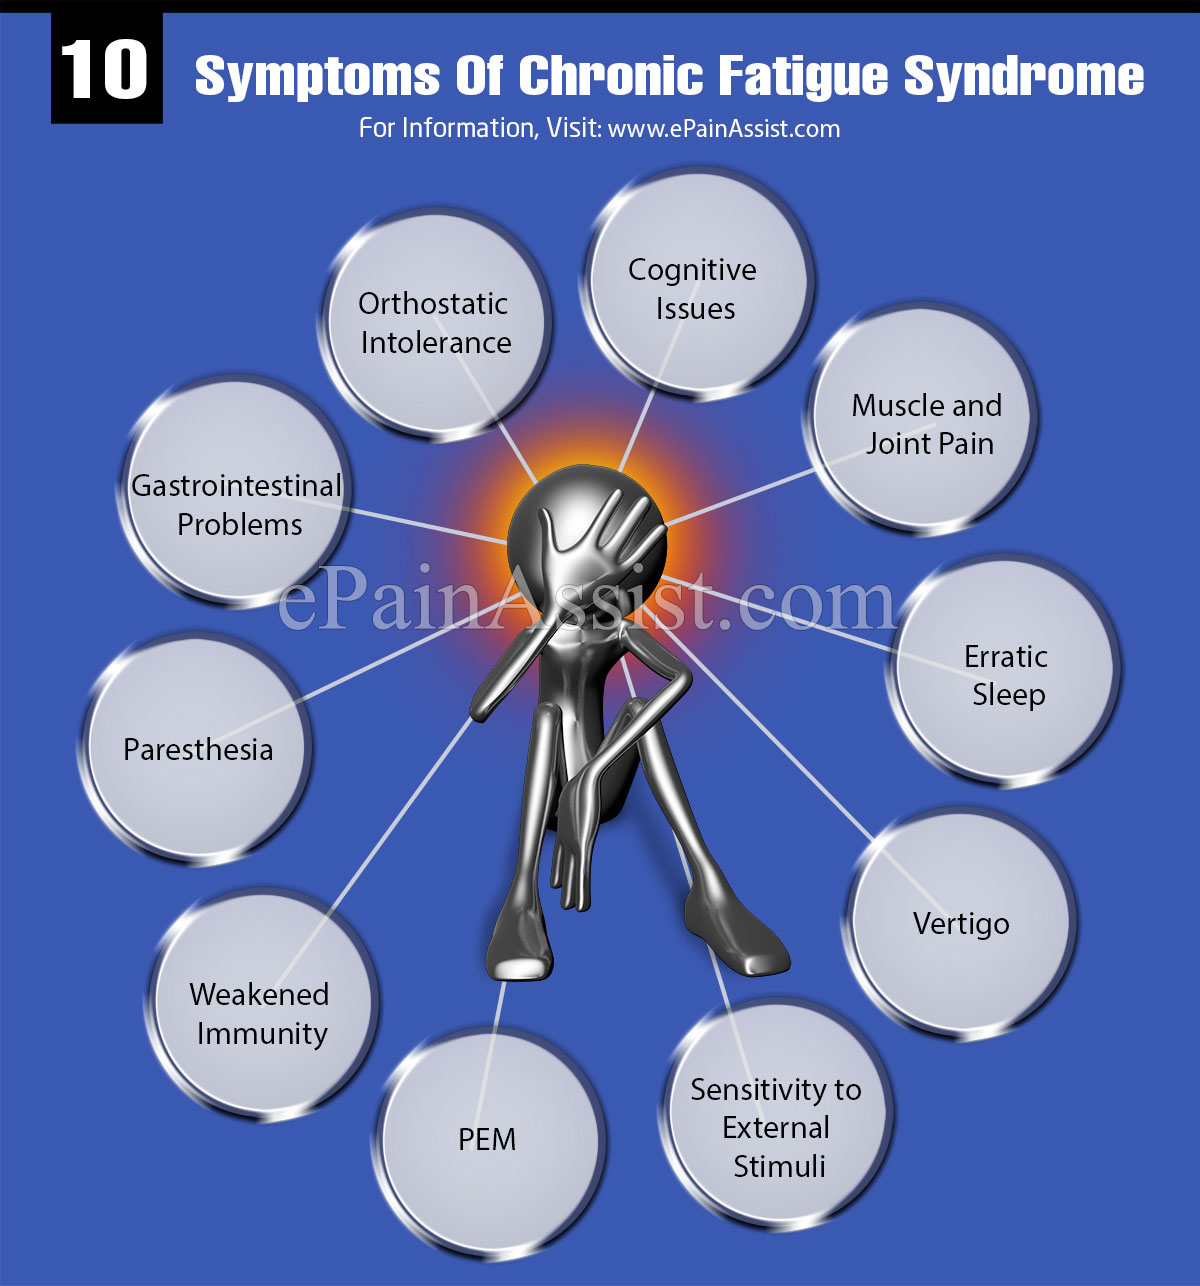 10 Symptoms Of Chronic Fatigue Syndrome (CFS)